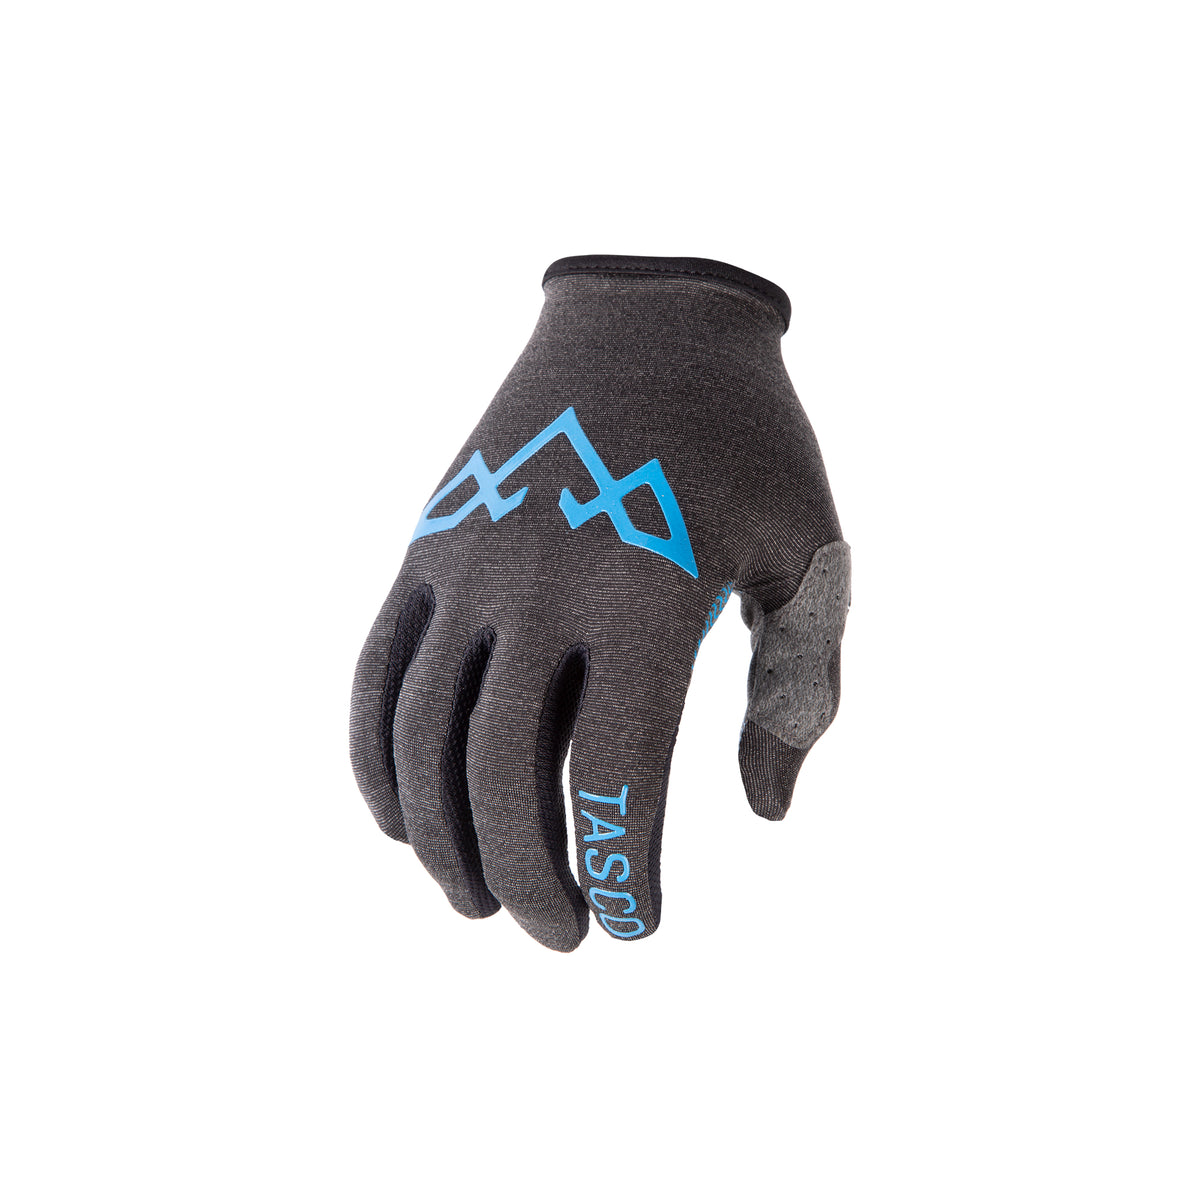 RECON Ultralight Gloves - Cyan Pop - MTB Lifestyle | TASCO MTB